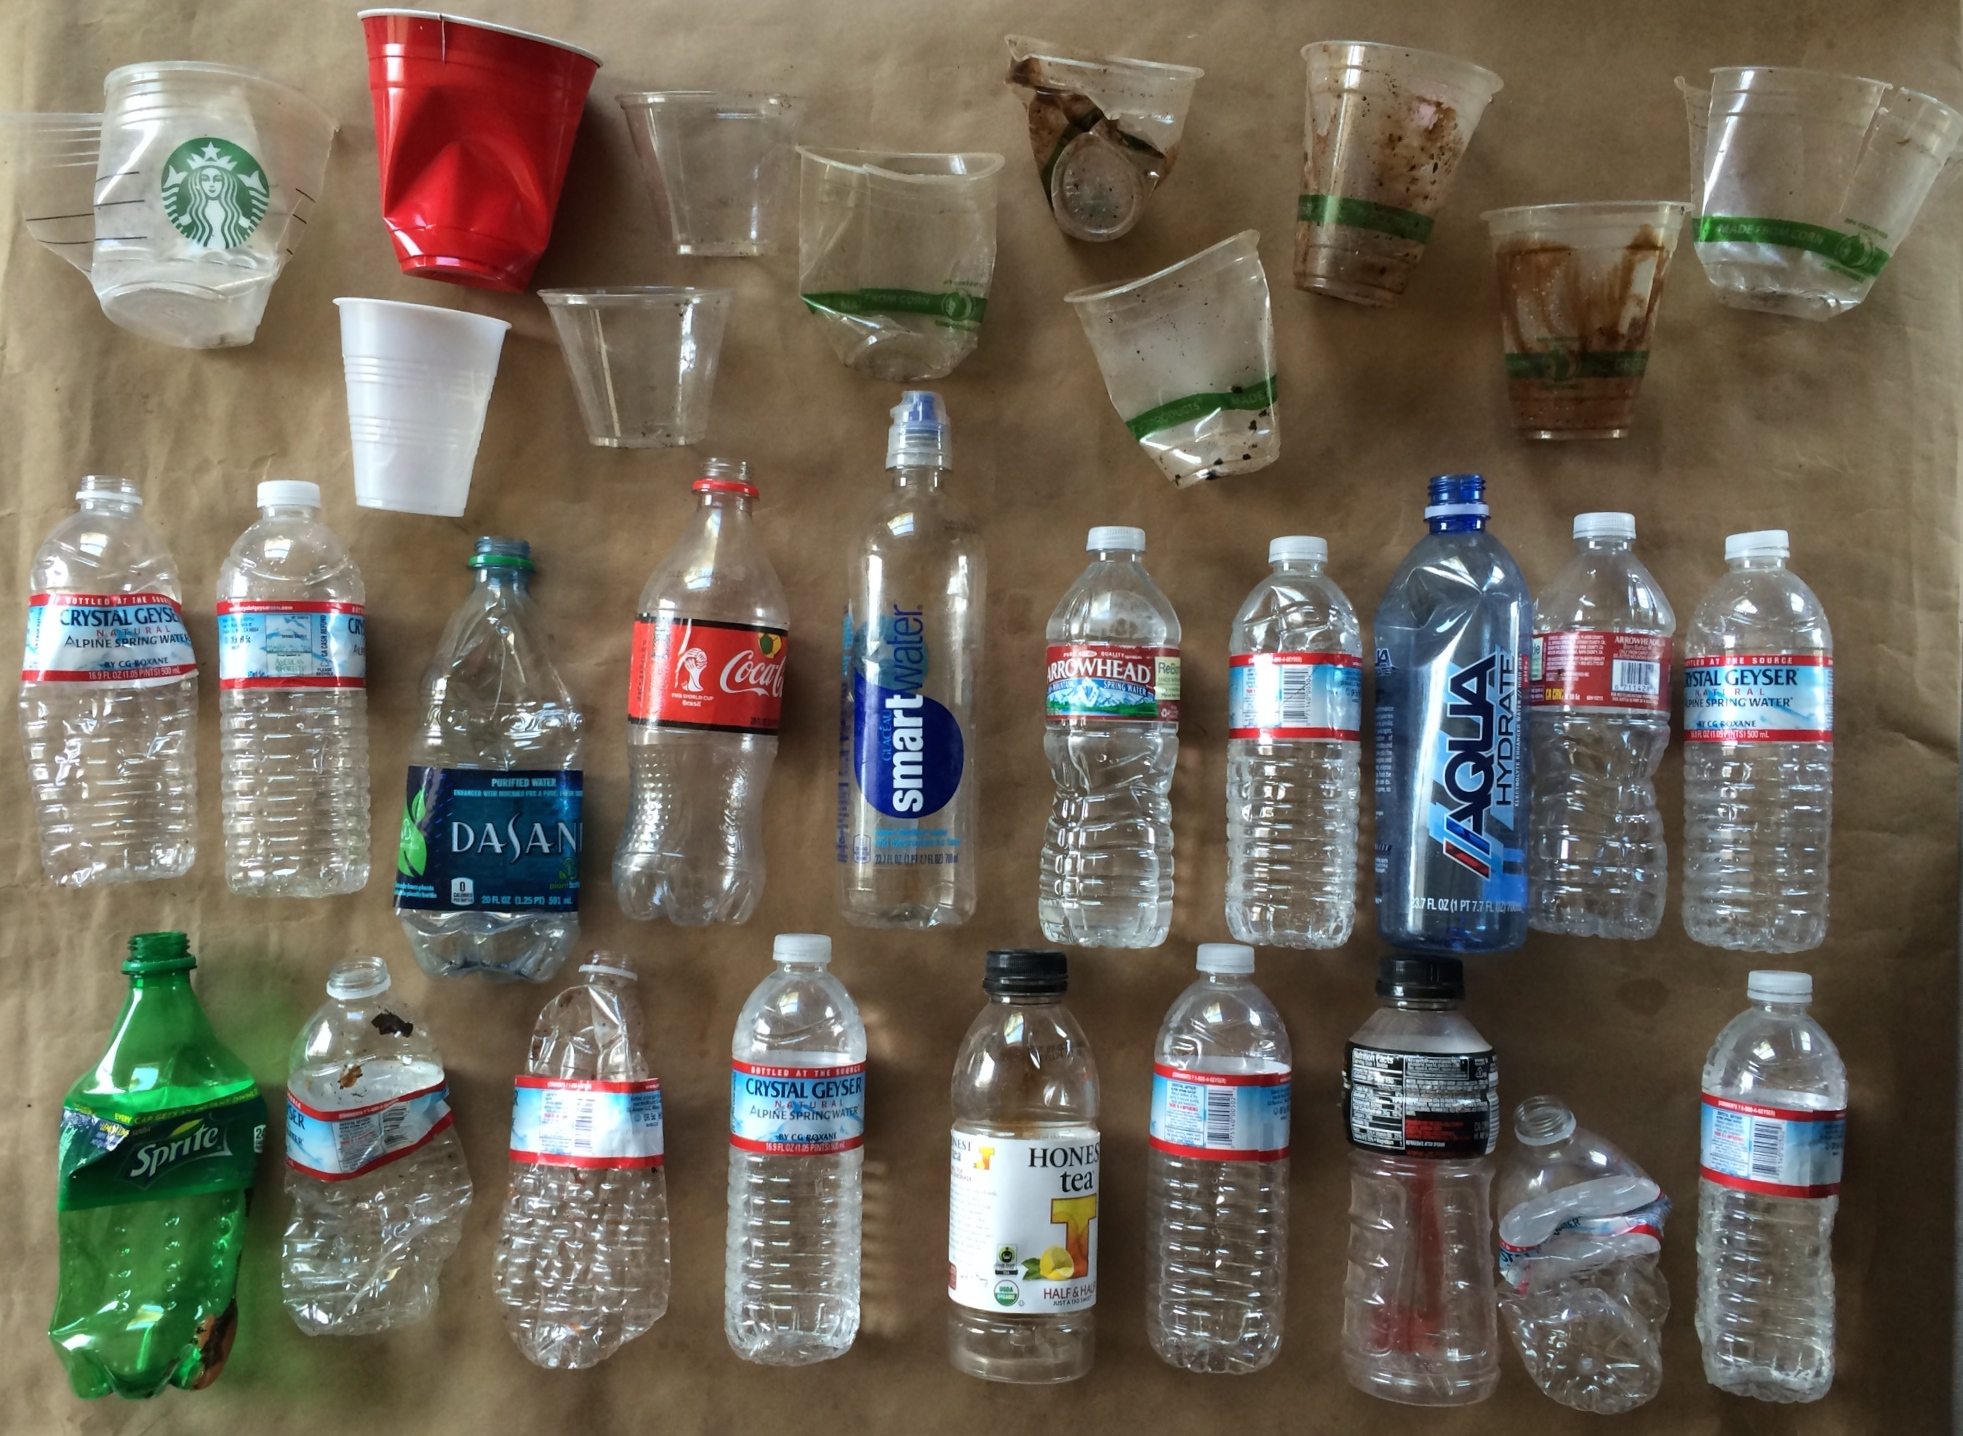 these were the water bottles (some of them we're almost full of water, that got me thinking about fresh water trapped in landfills)